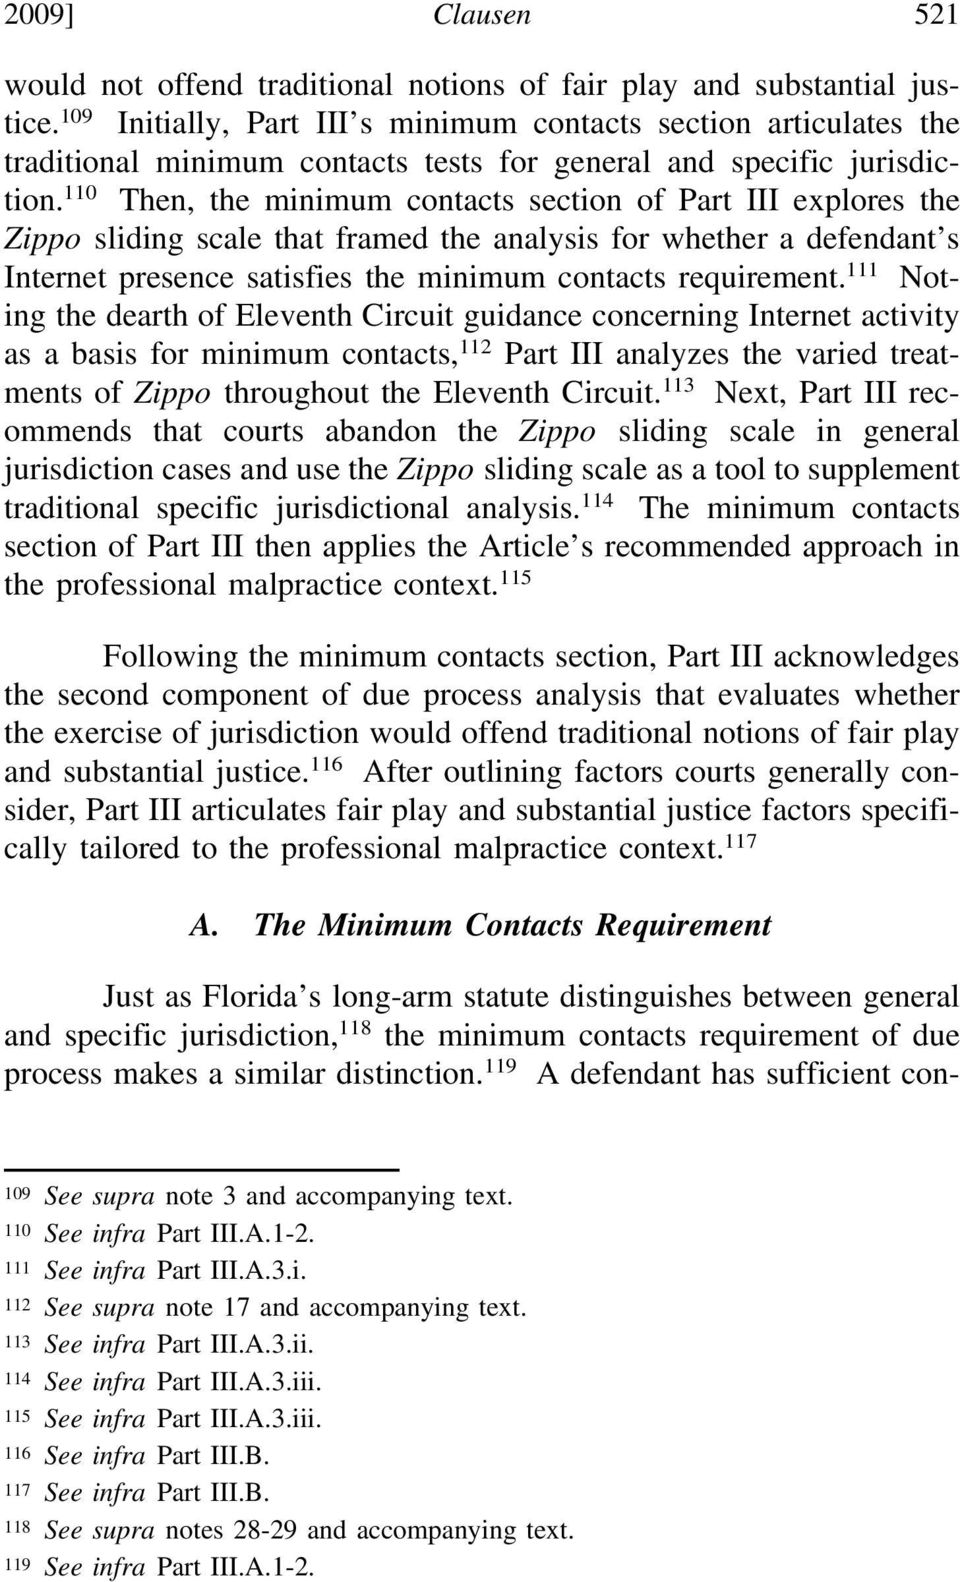 110 Then, the minimum contacts section of Part III explores the Zippo sliding scale that framed the analysis for whether a defendant s Internet presence satisfies the minimum contacts requirement.